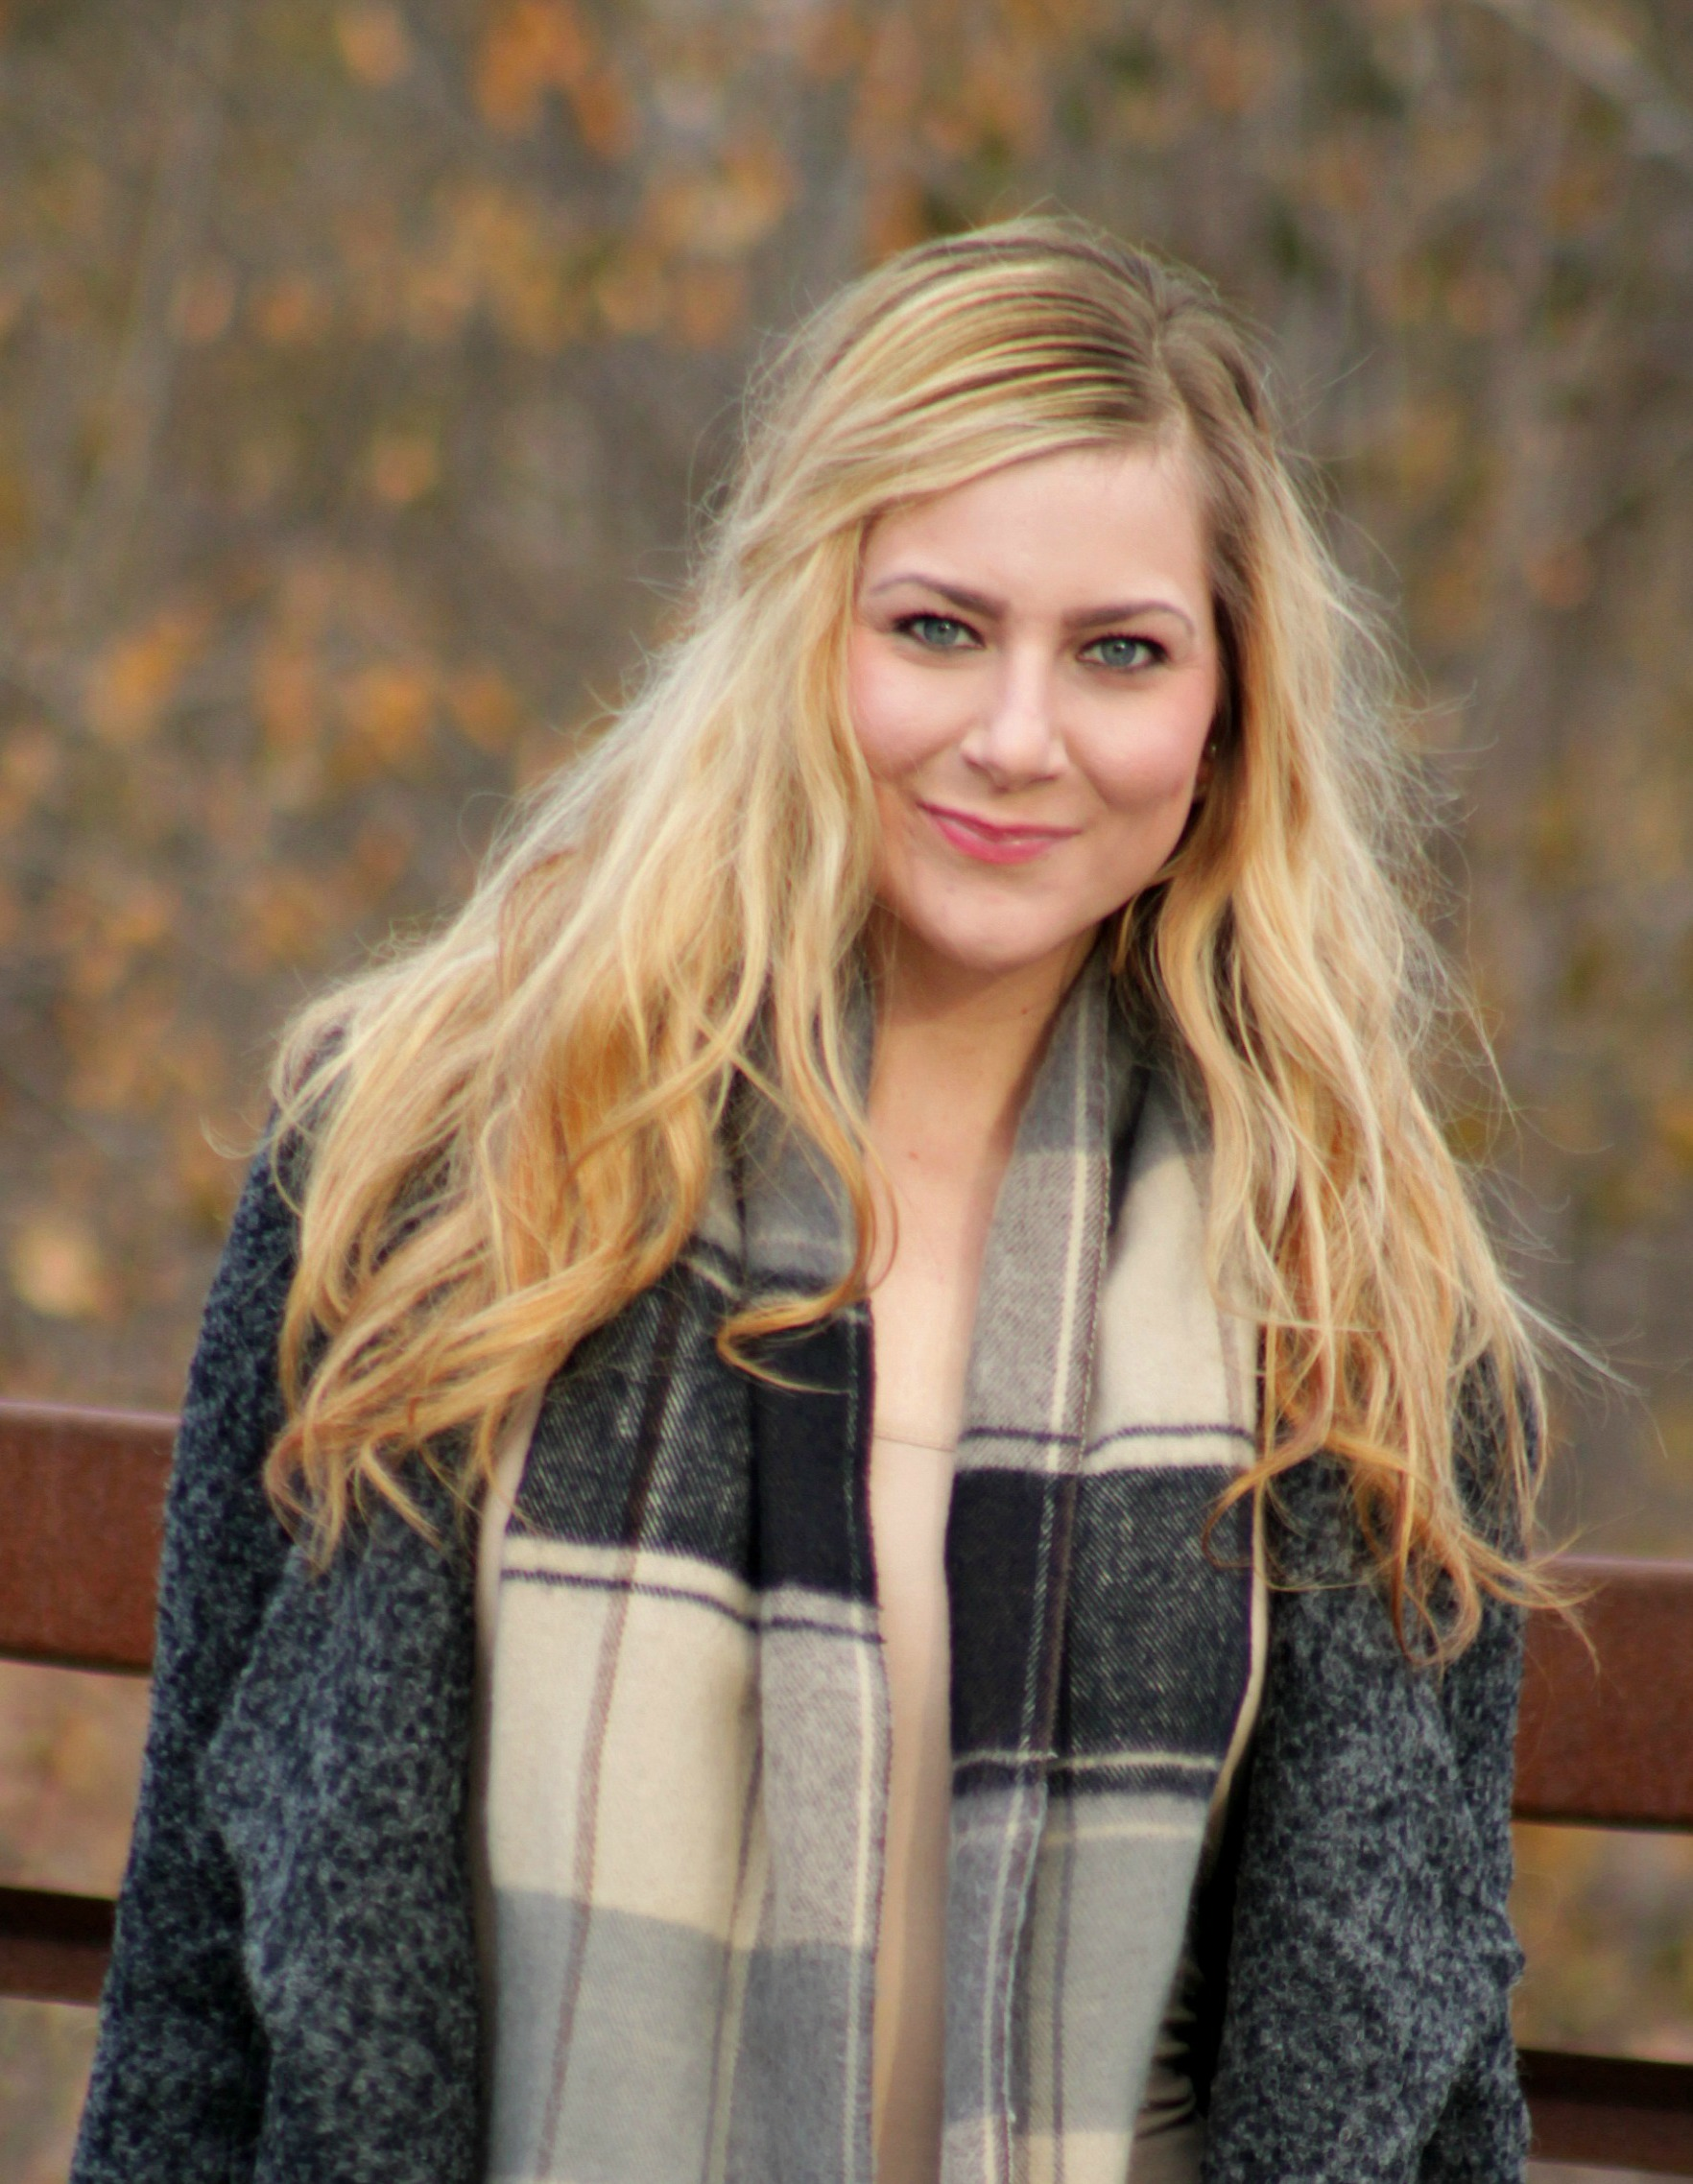 Oversized lapel tweed jacket + plaid scarf